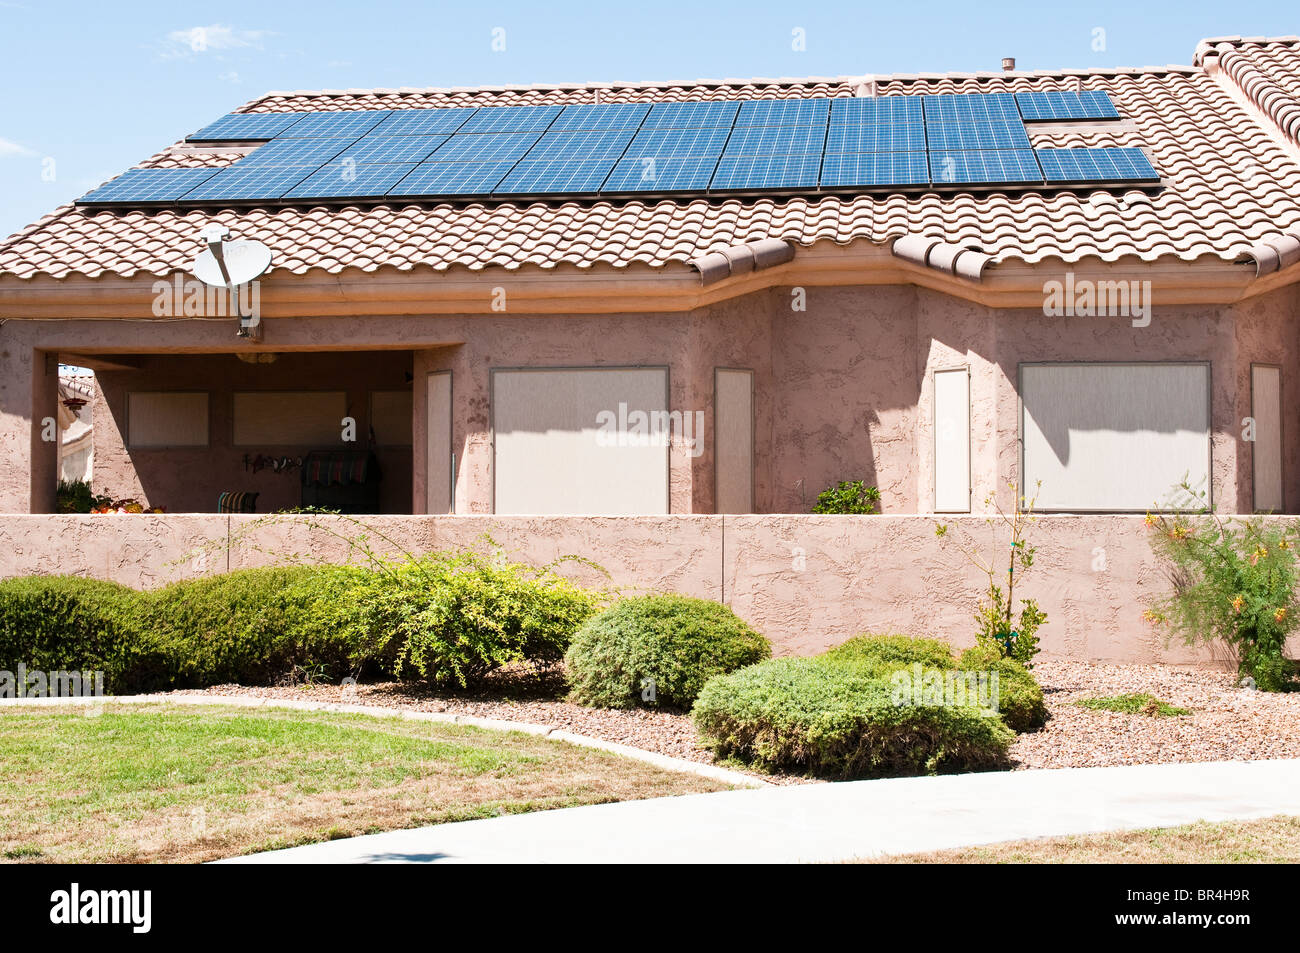 Roof mounted solar panels supply electrical energy to suburban homes in Arizona. - Stock Image